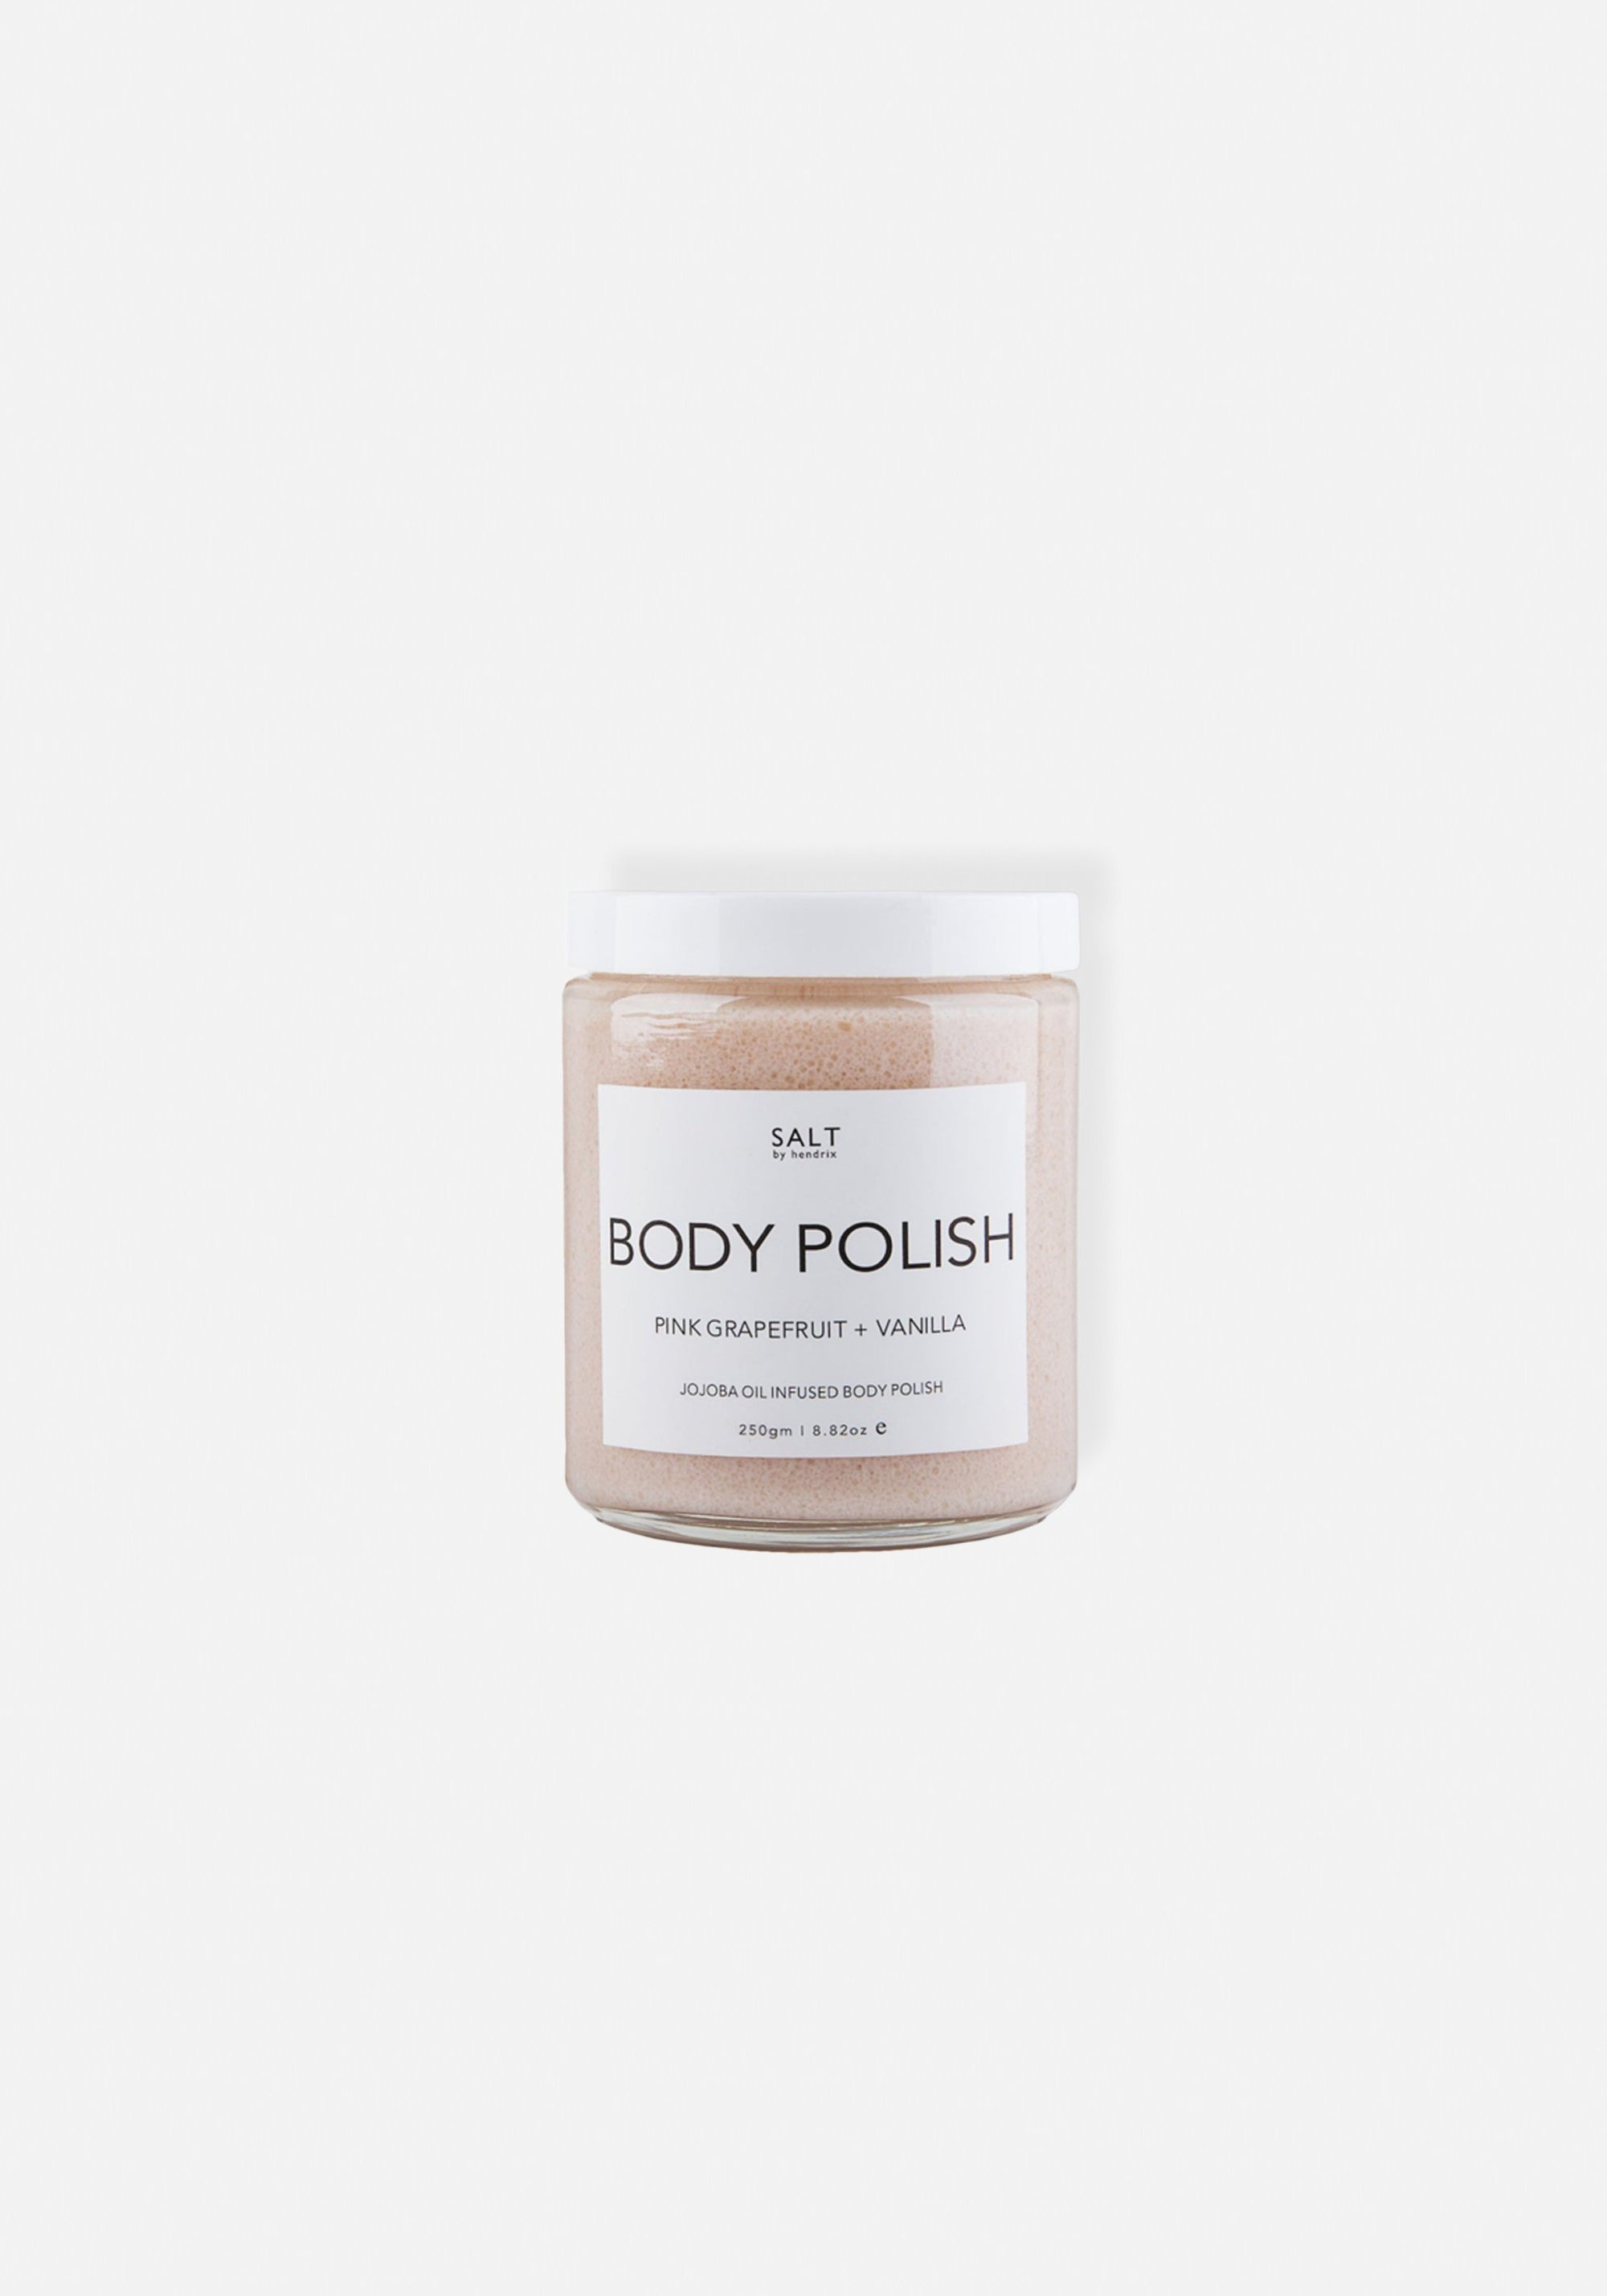 SALT BY HENDRIX - Body Polish - Pink Grapefruit & Vanilla